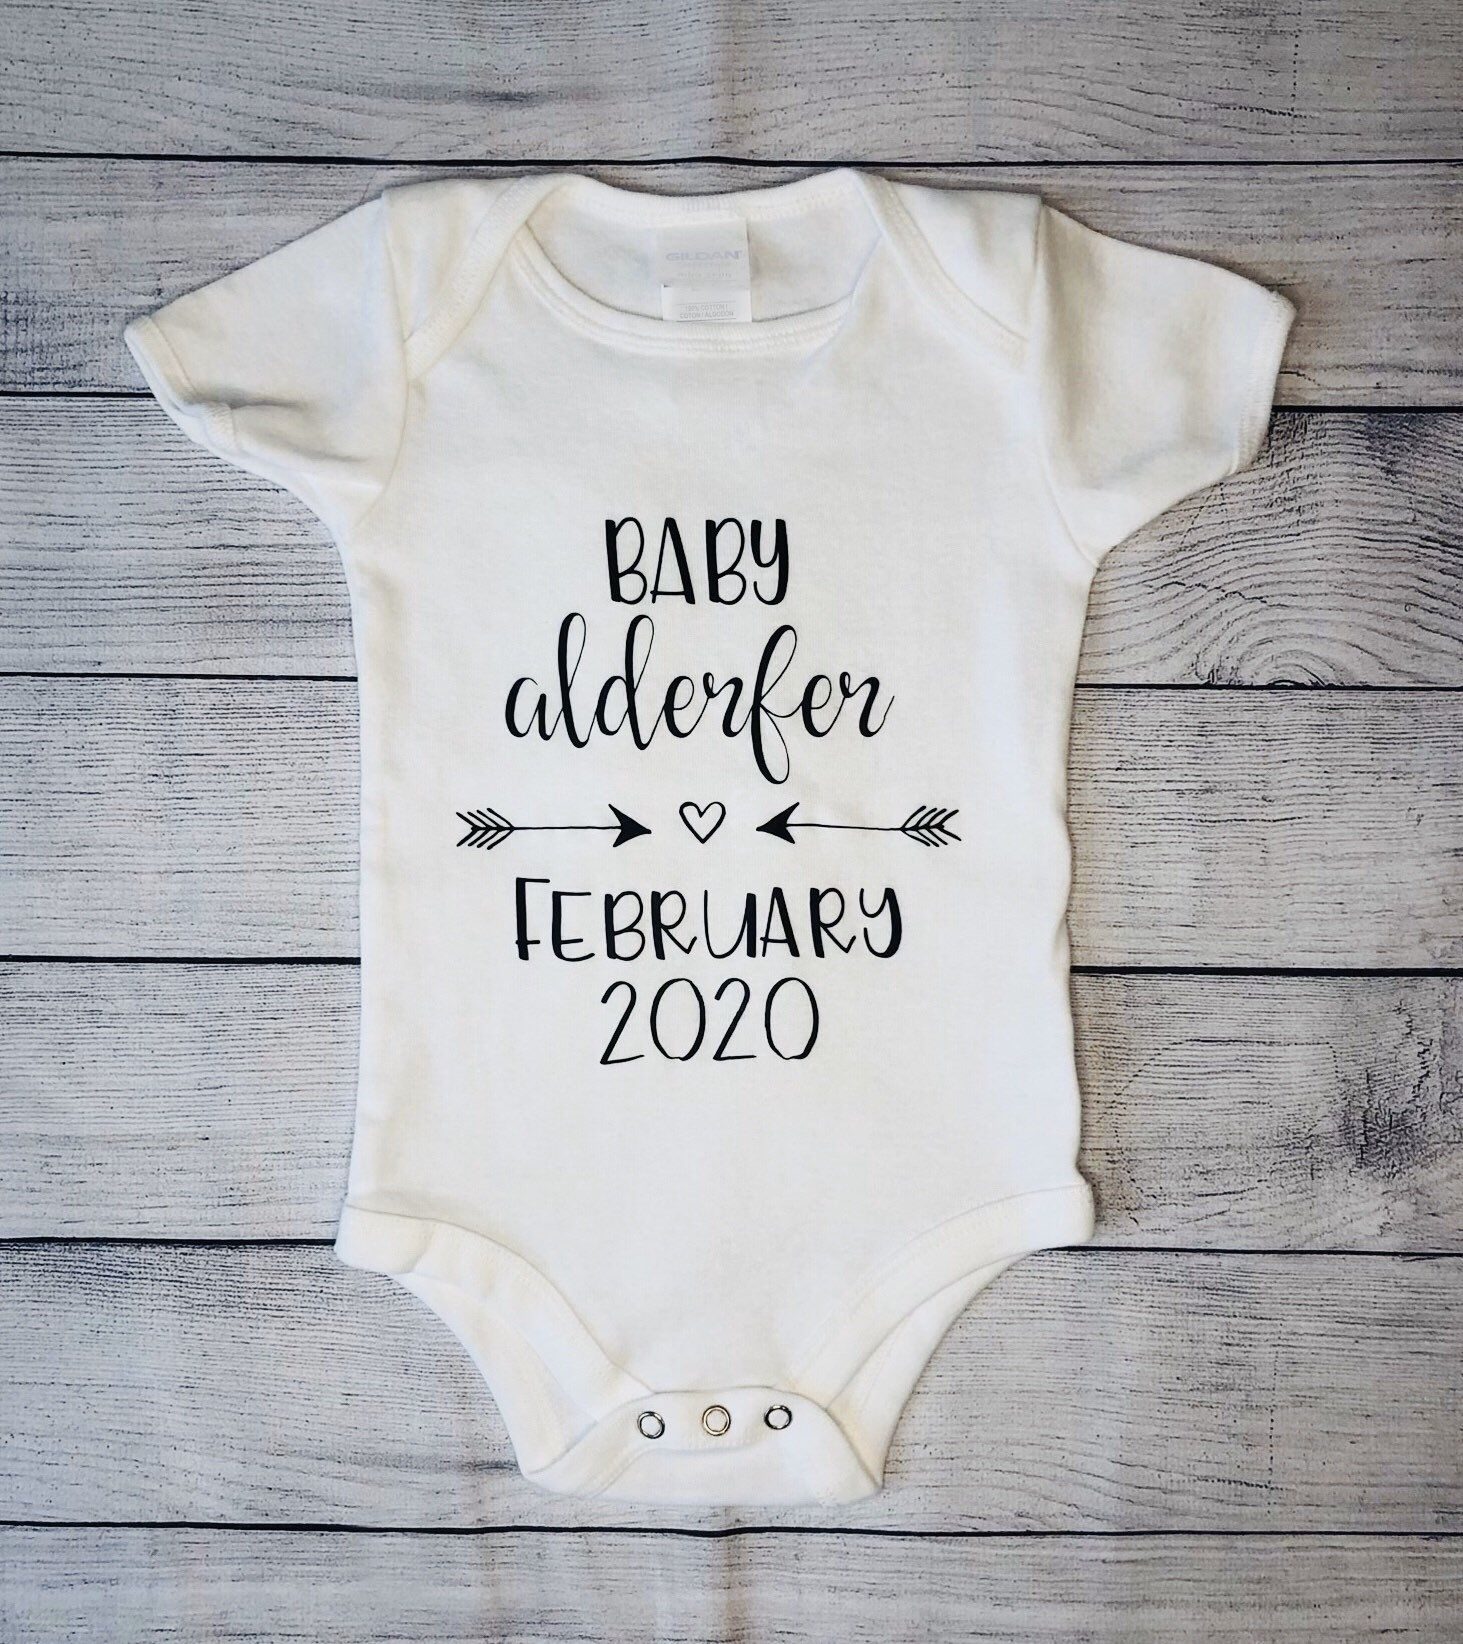 Personalized Baby Pregnancy Announcement Onesie Baby Last Name /& Due Date Bodysuit